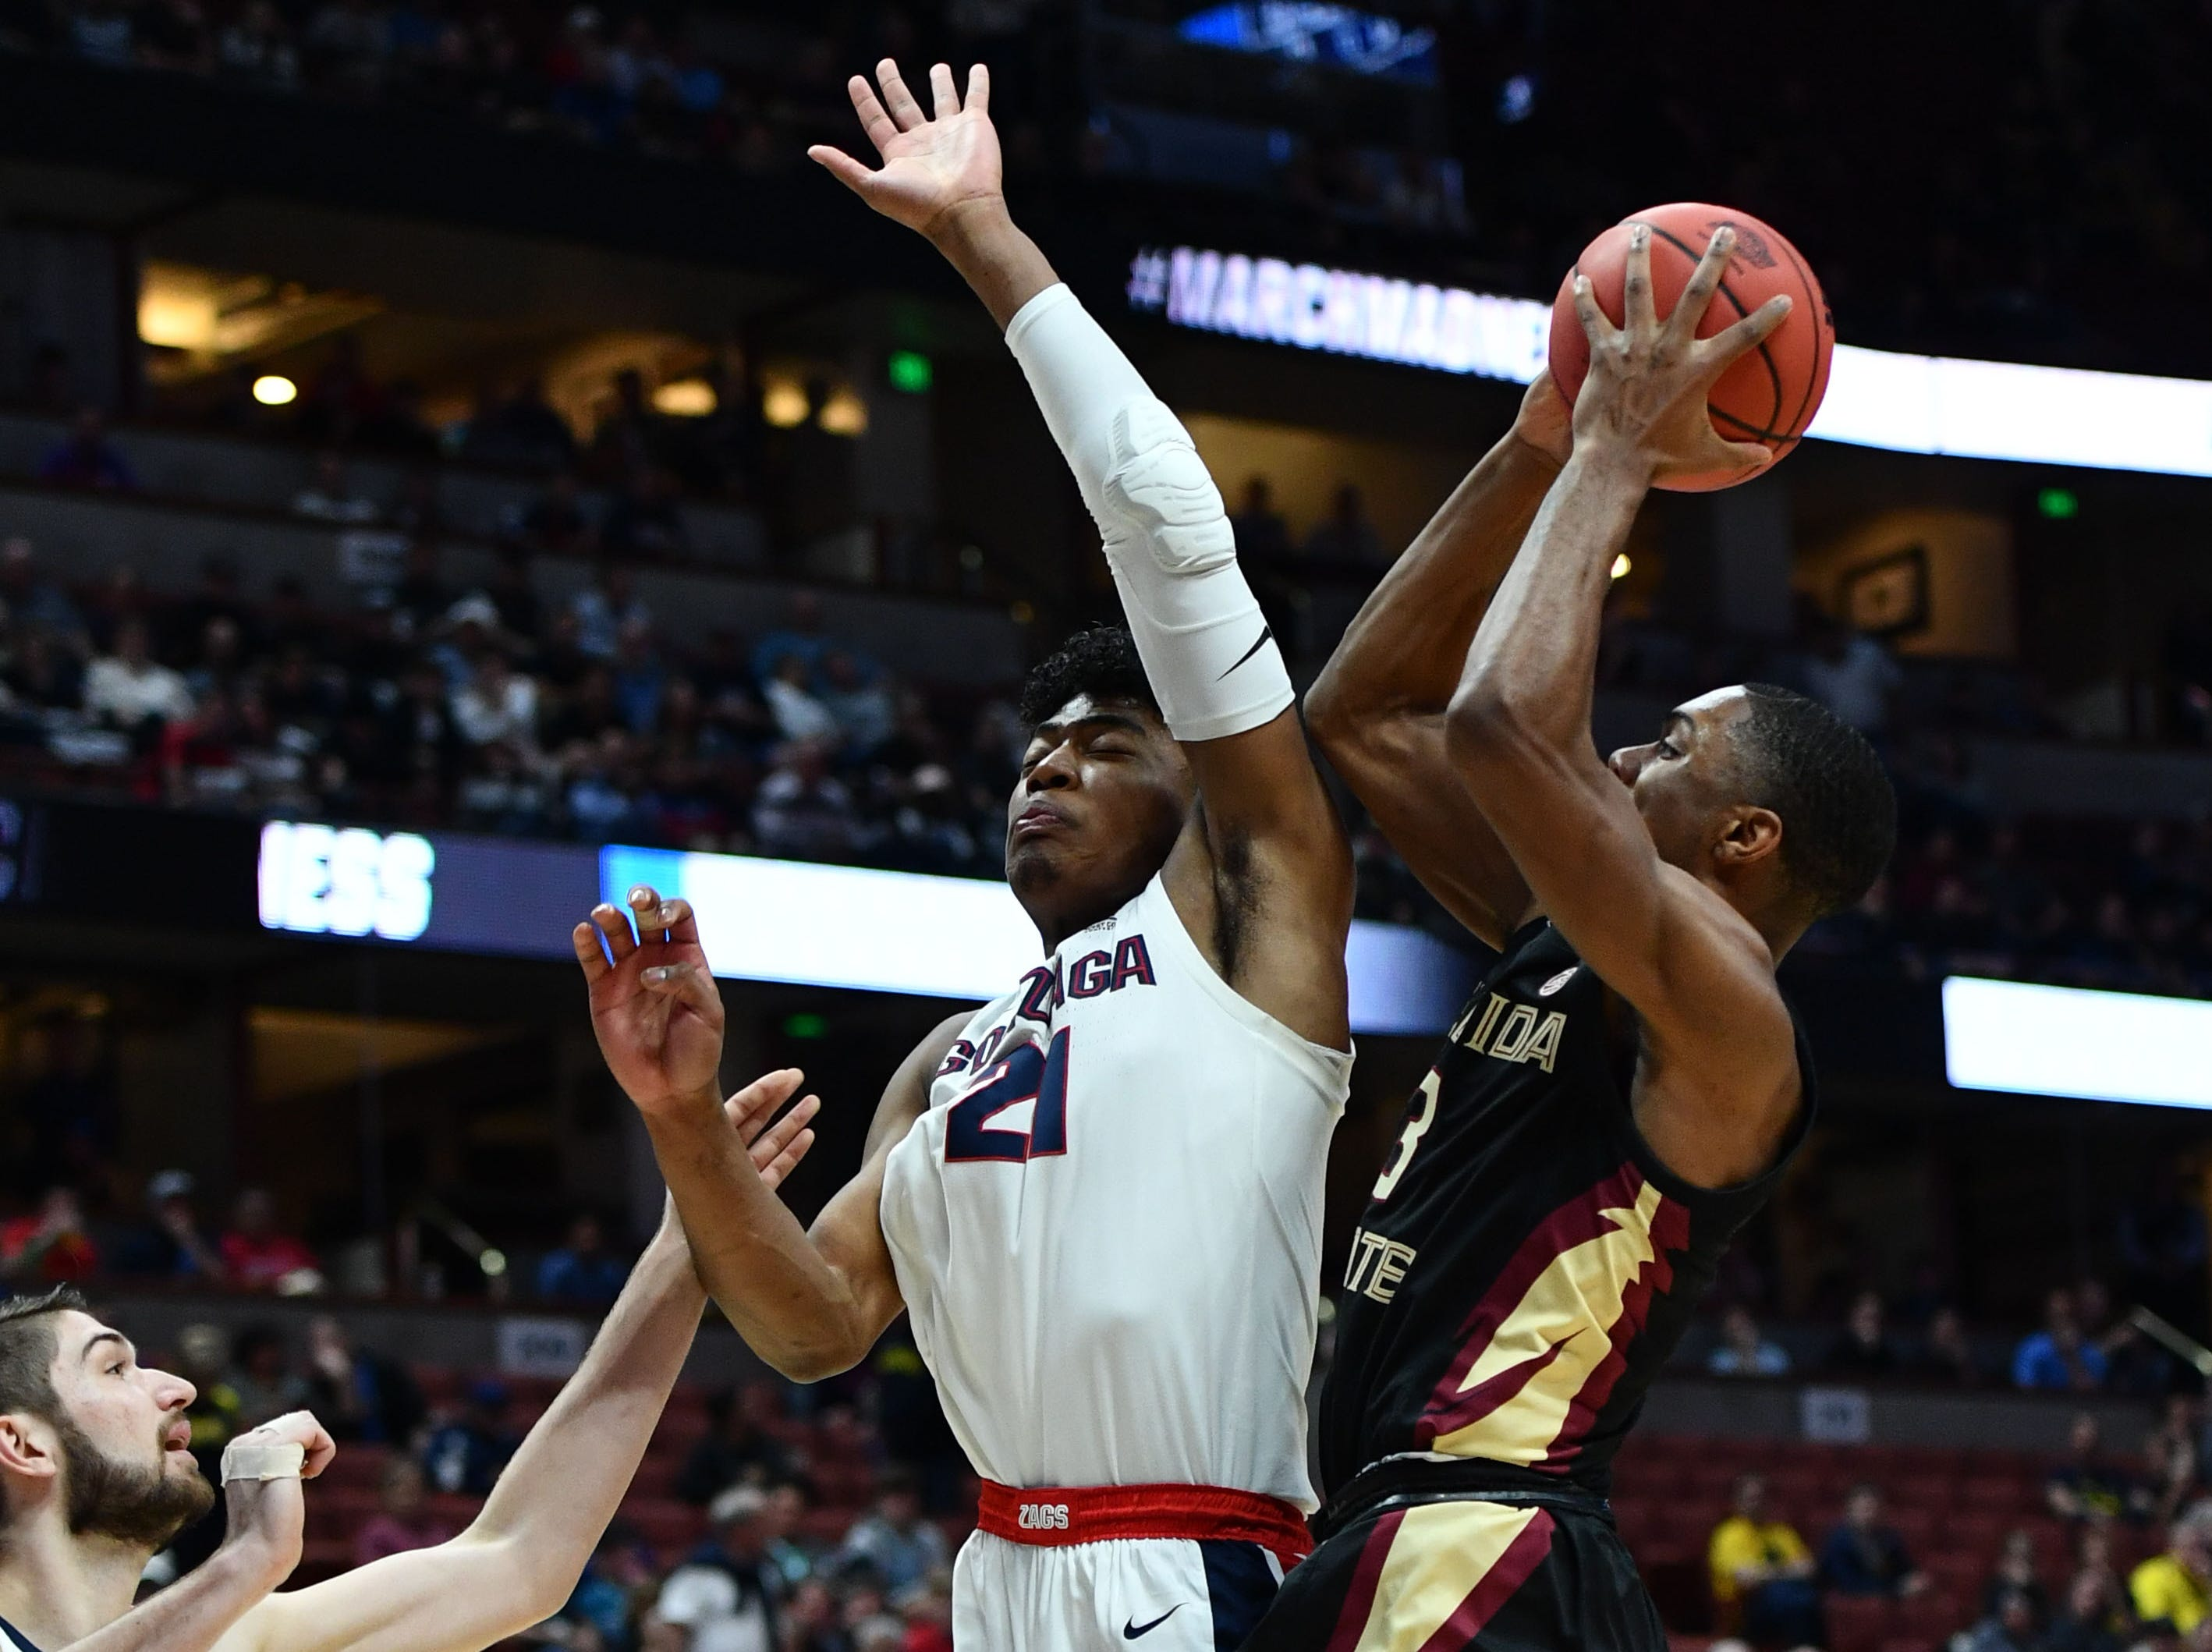 March 28, 2019; Anaheim, CA, USA; Florida State Seminoles guard Trent Forrest (3) shoots against Gonzaga Bulldogs forward Rui Hachimura (21) during the first half in the semifinals of the west regional of the 2019 NCAA Tournament at Honda Center. Mandatory Credit: Robert Hanashiro-USA TODAY Sports